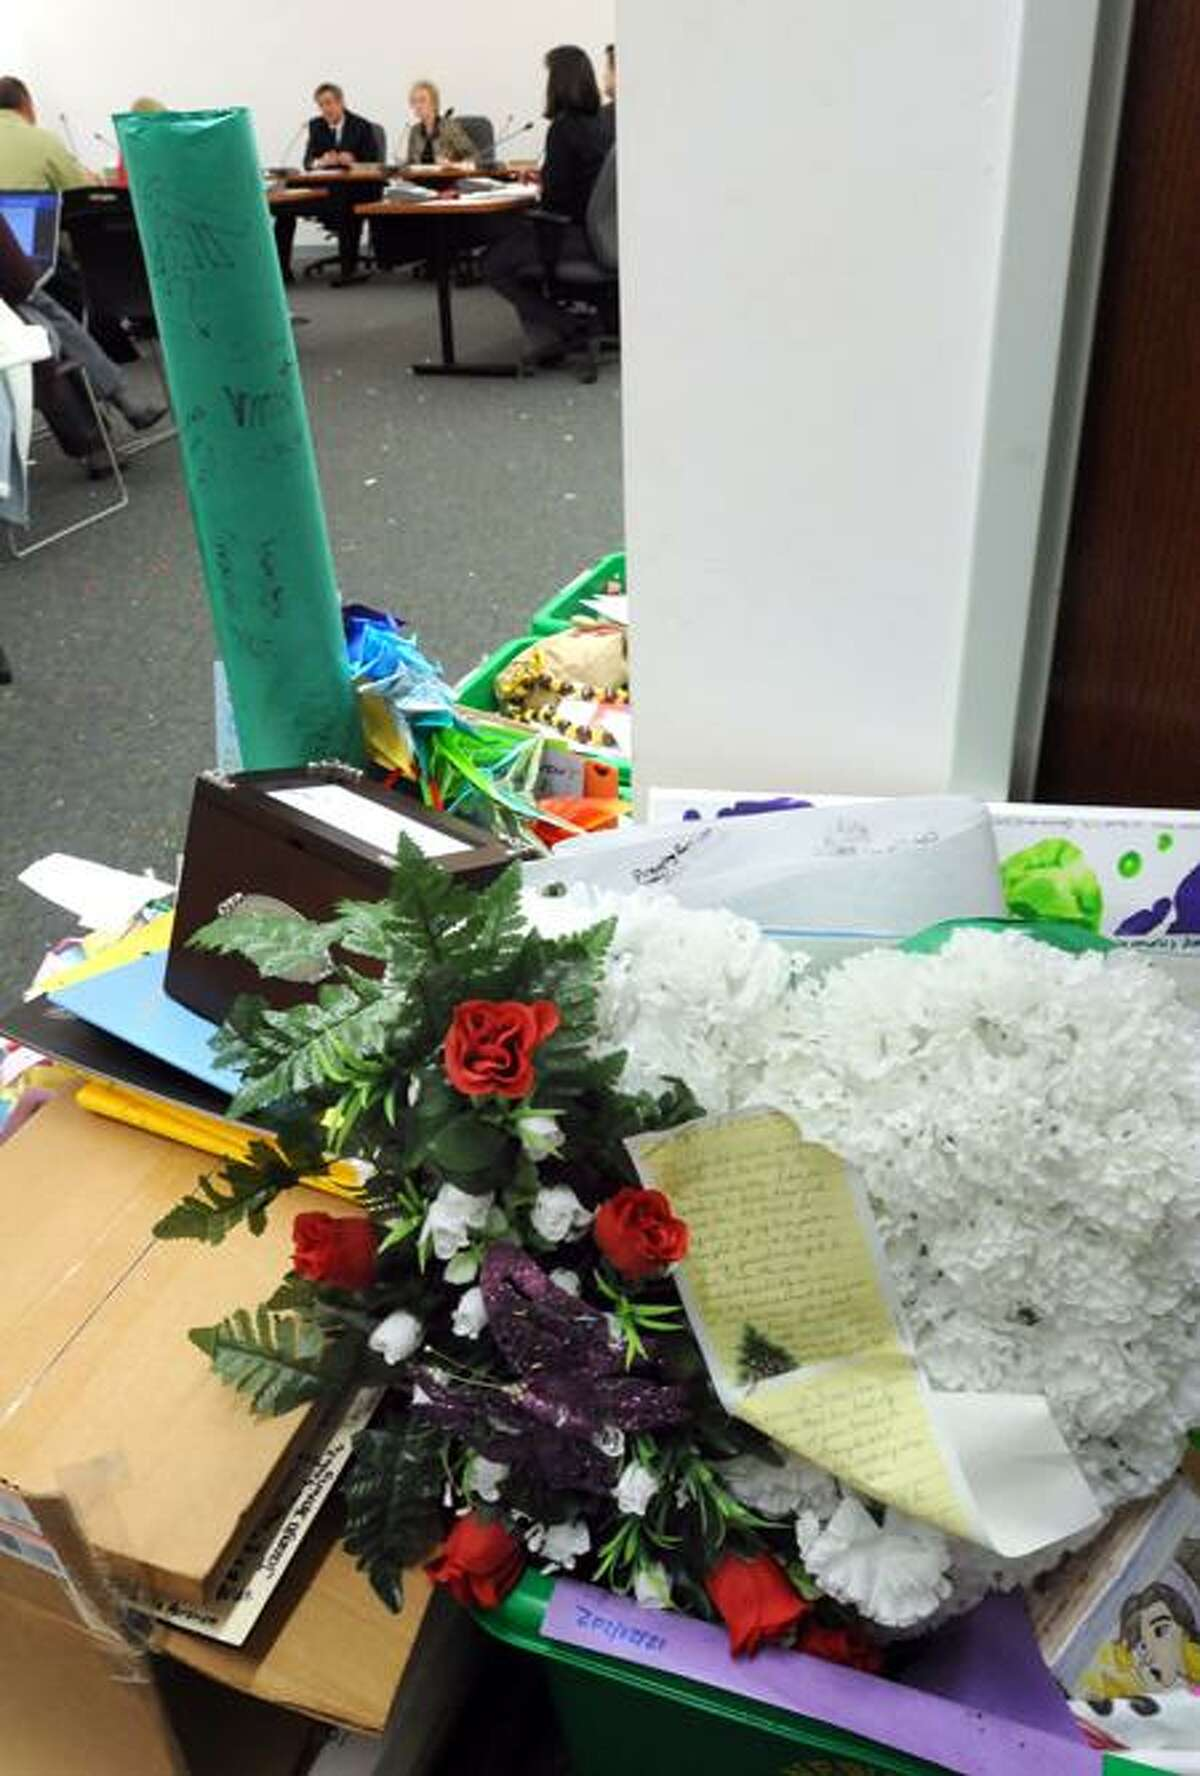 Some of the donations to Newtown from all over the world are housed in the room at the Newtown Municipal Center where the selectmen's meeting is held. Mara Lavitt/New Haven Register1/7/13